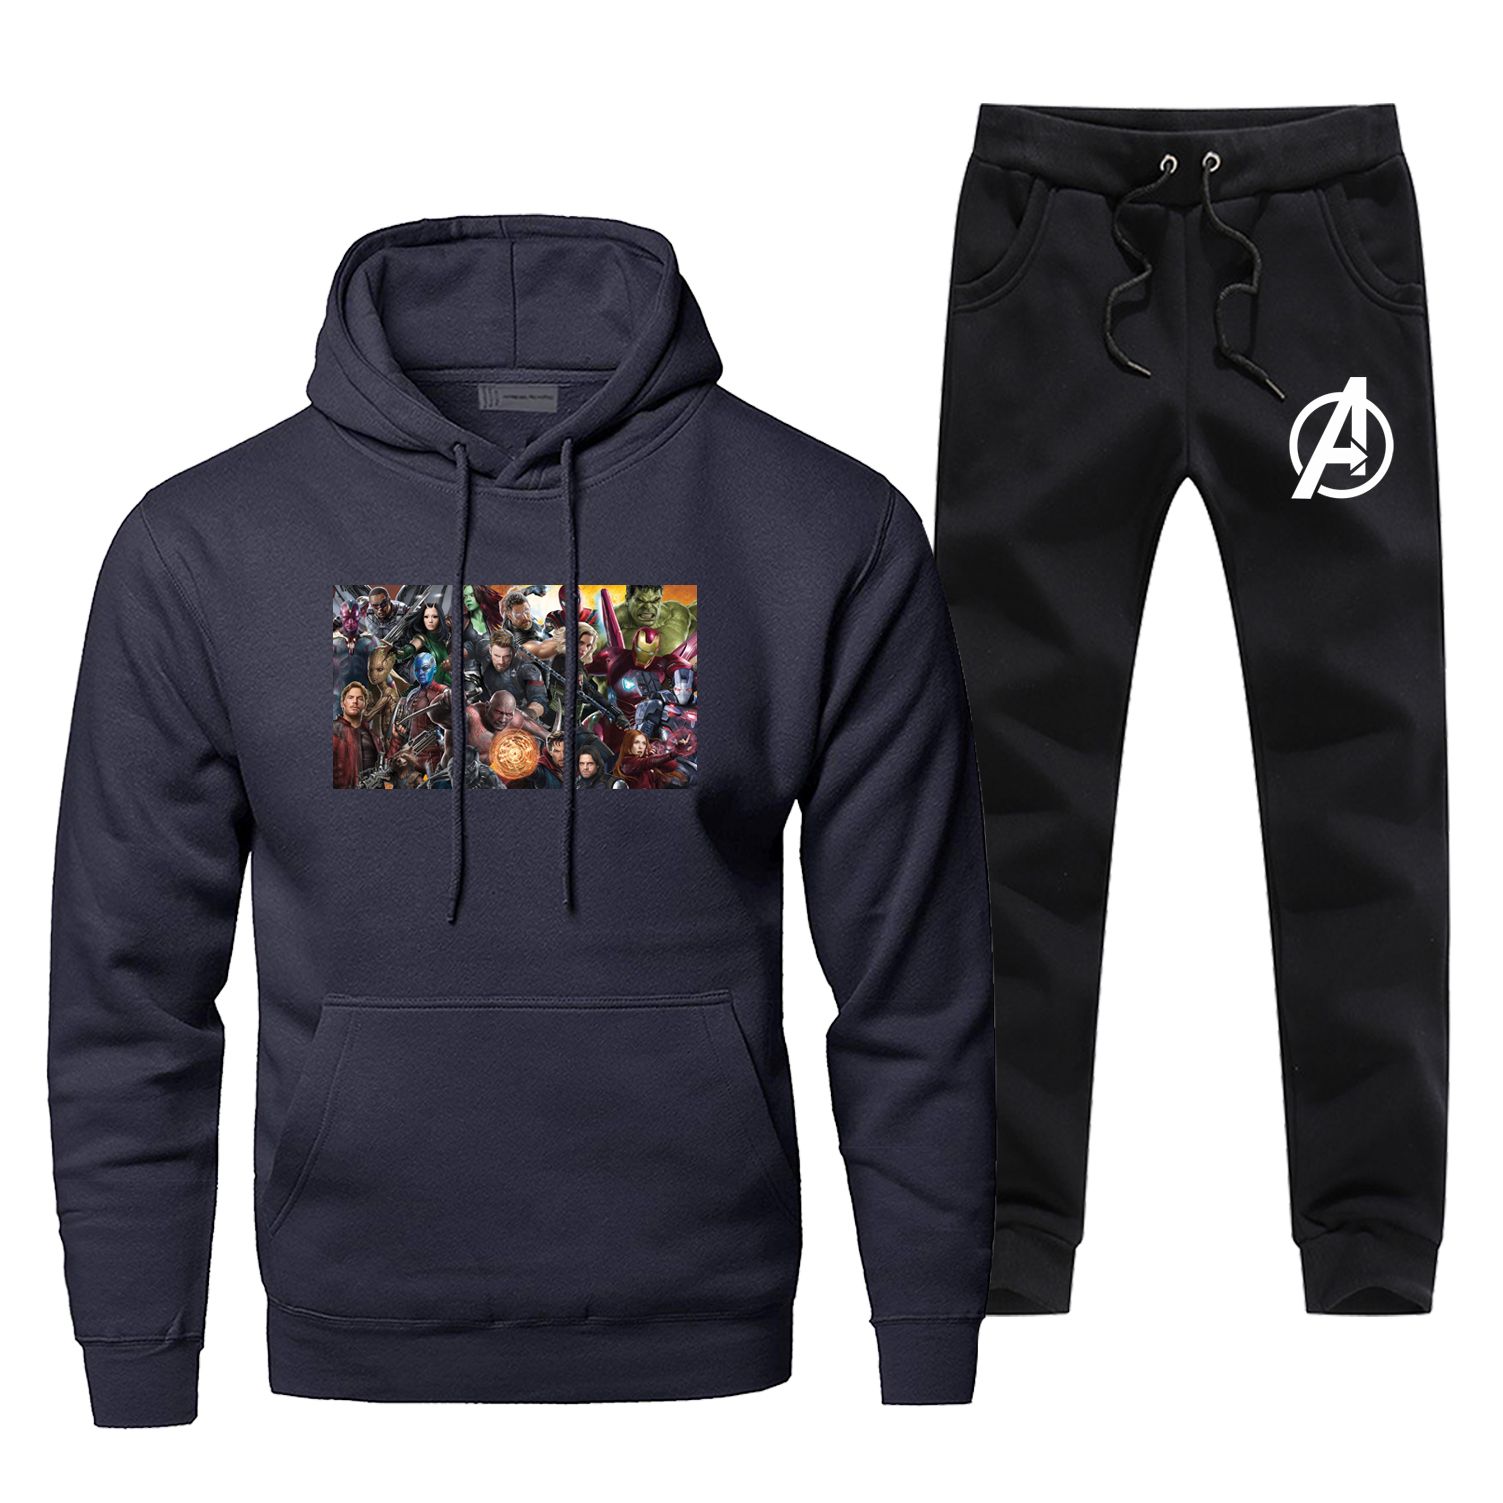 The Avengers Endgame Sportsman Wear Iron Man Super Hero Fashion Men's Jogging End Game Casual Fitness Skateboard Warm Male Set